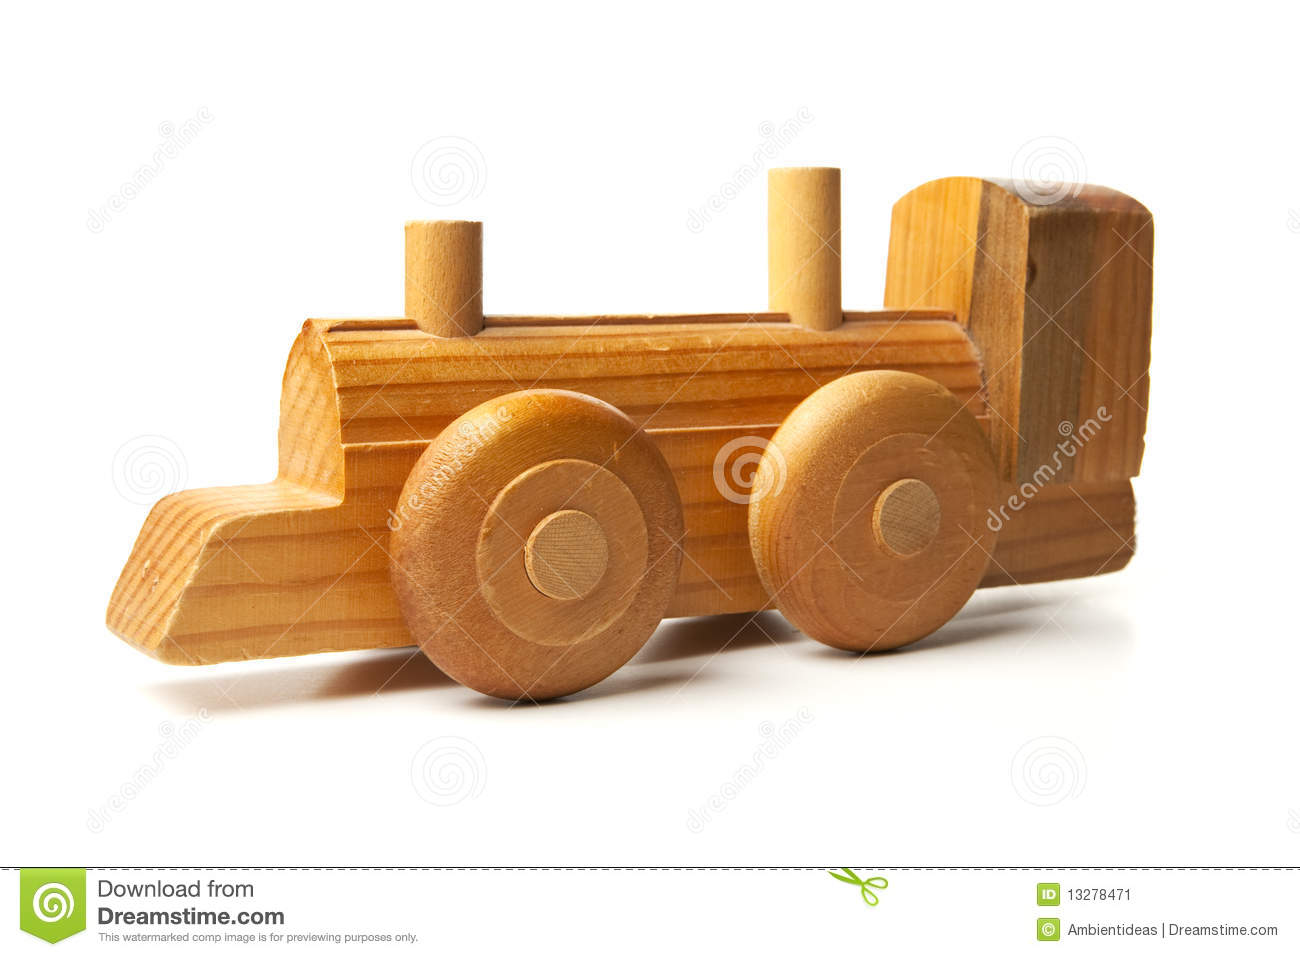 Hand Made Wood Toy Train. Isolated on white background.